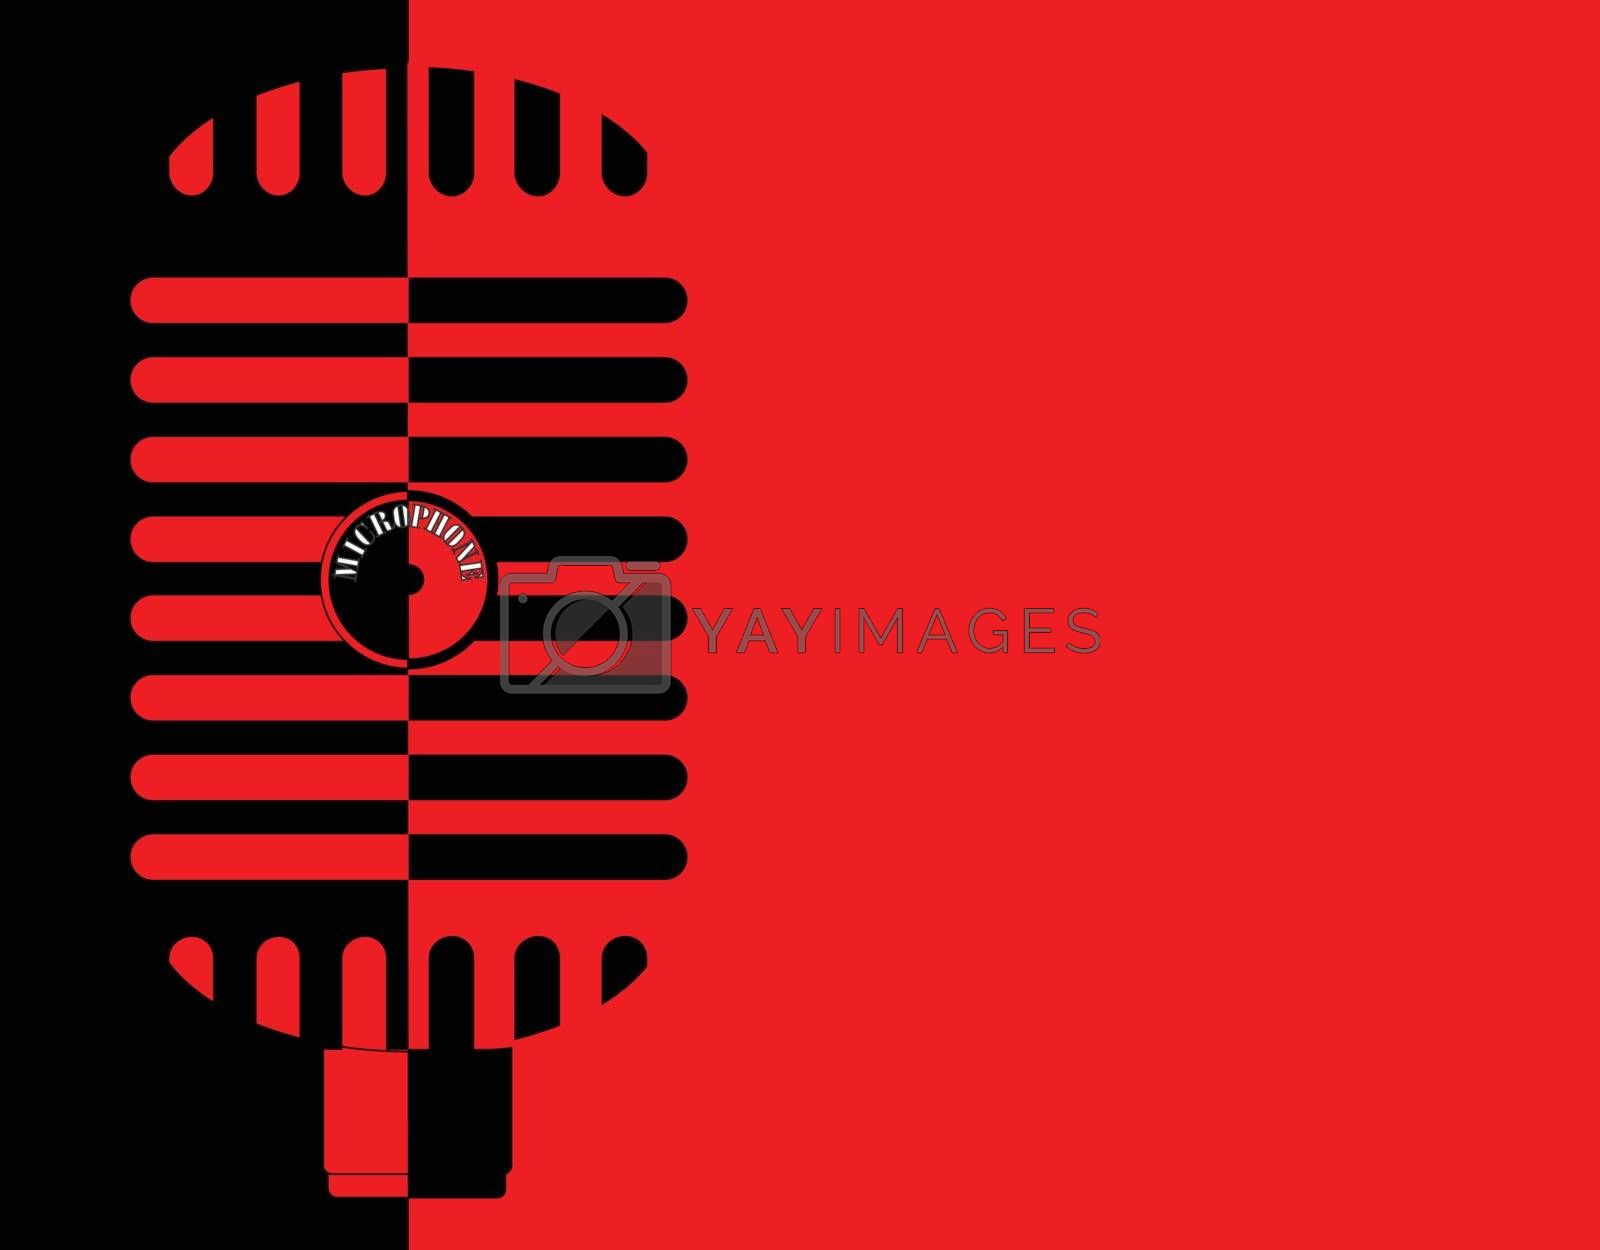 A classic old style microphone in red and black isolated on a red and black background